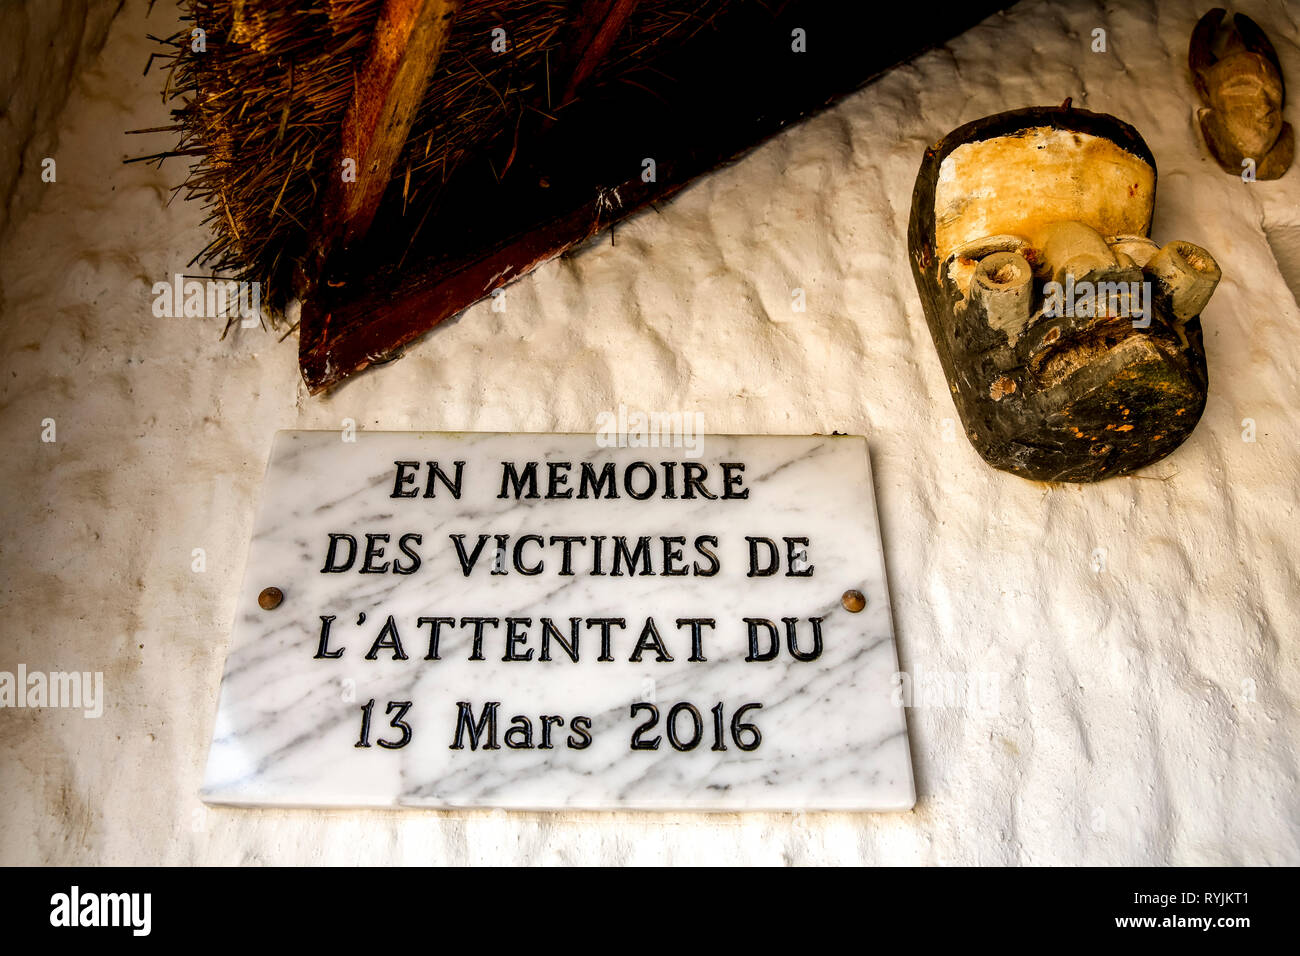 Memorial slab to the victims of terrorism in a Grand Bassam hotel, Ivory Coast. - Stock Image